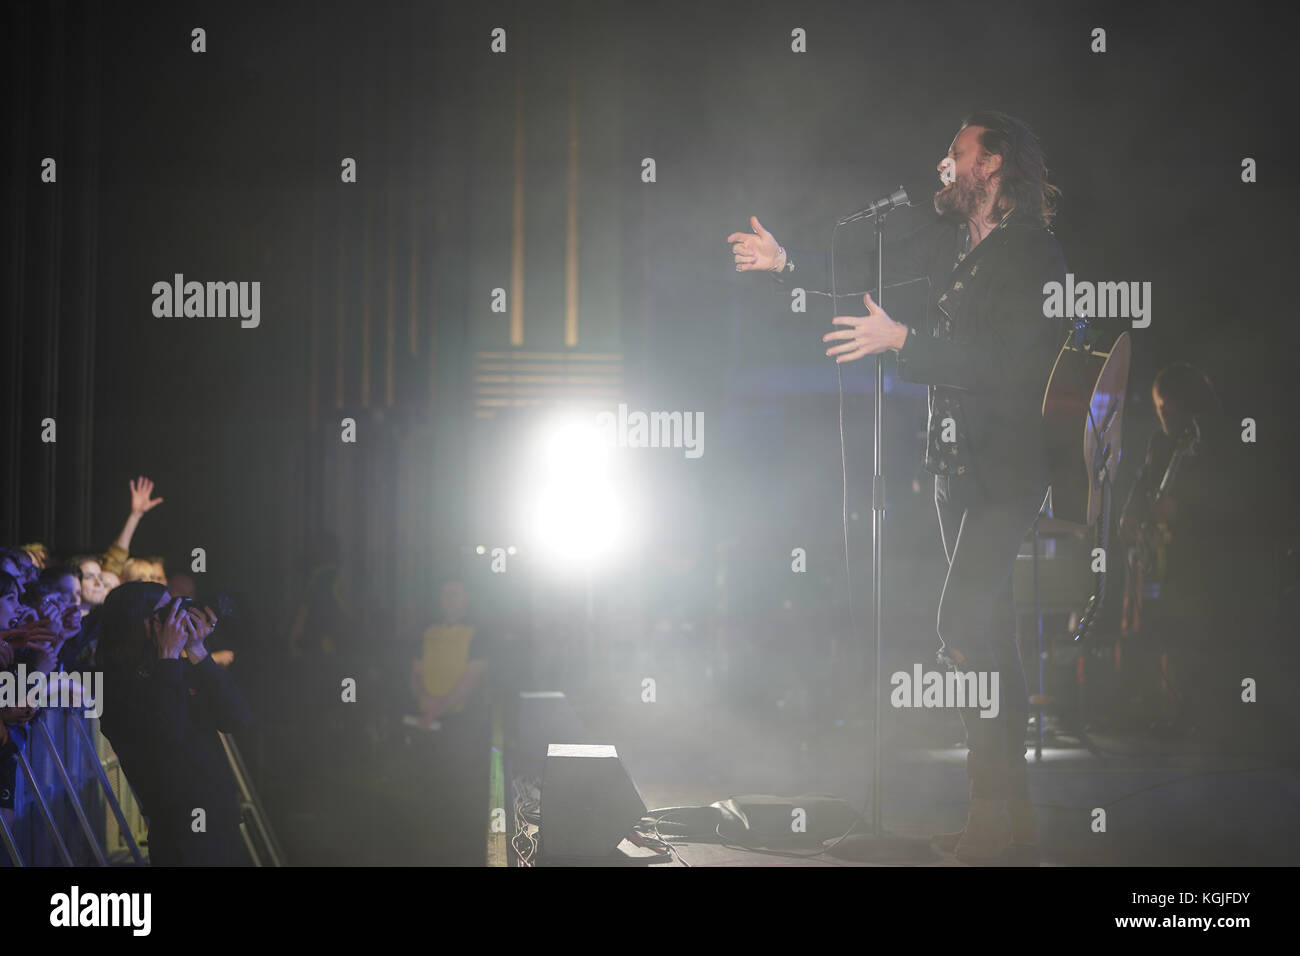 Hammersmith, London, UK. 08th Nov, 2017. Father John Misty (real name: Josh Tillman) performing live on stage at - Stock Image